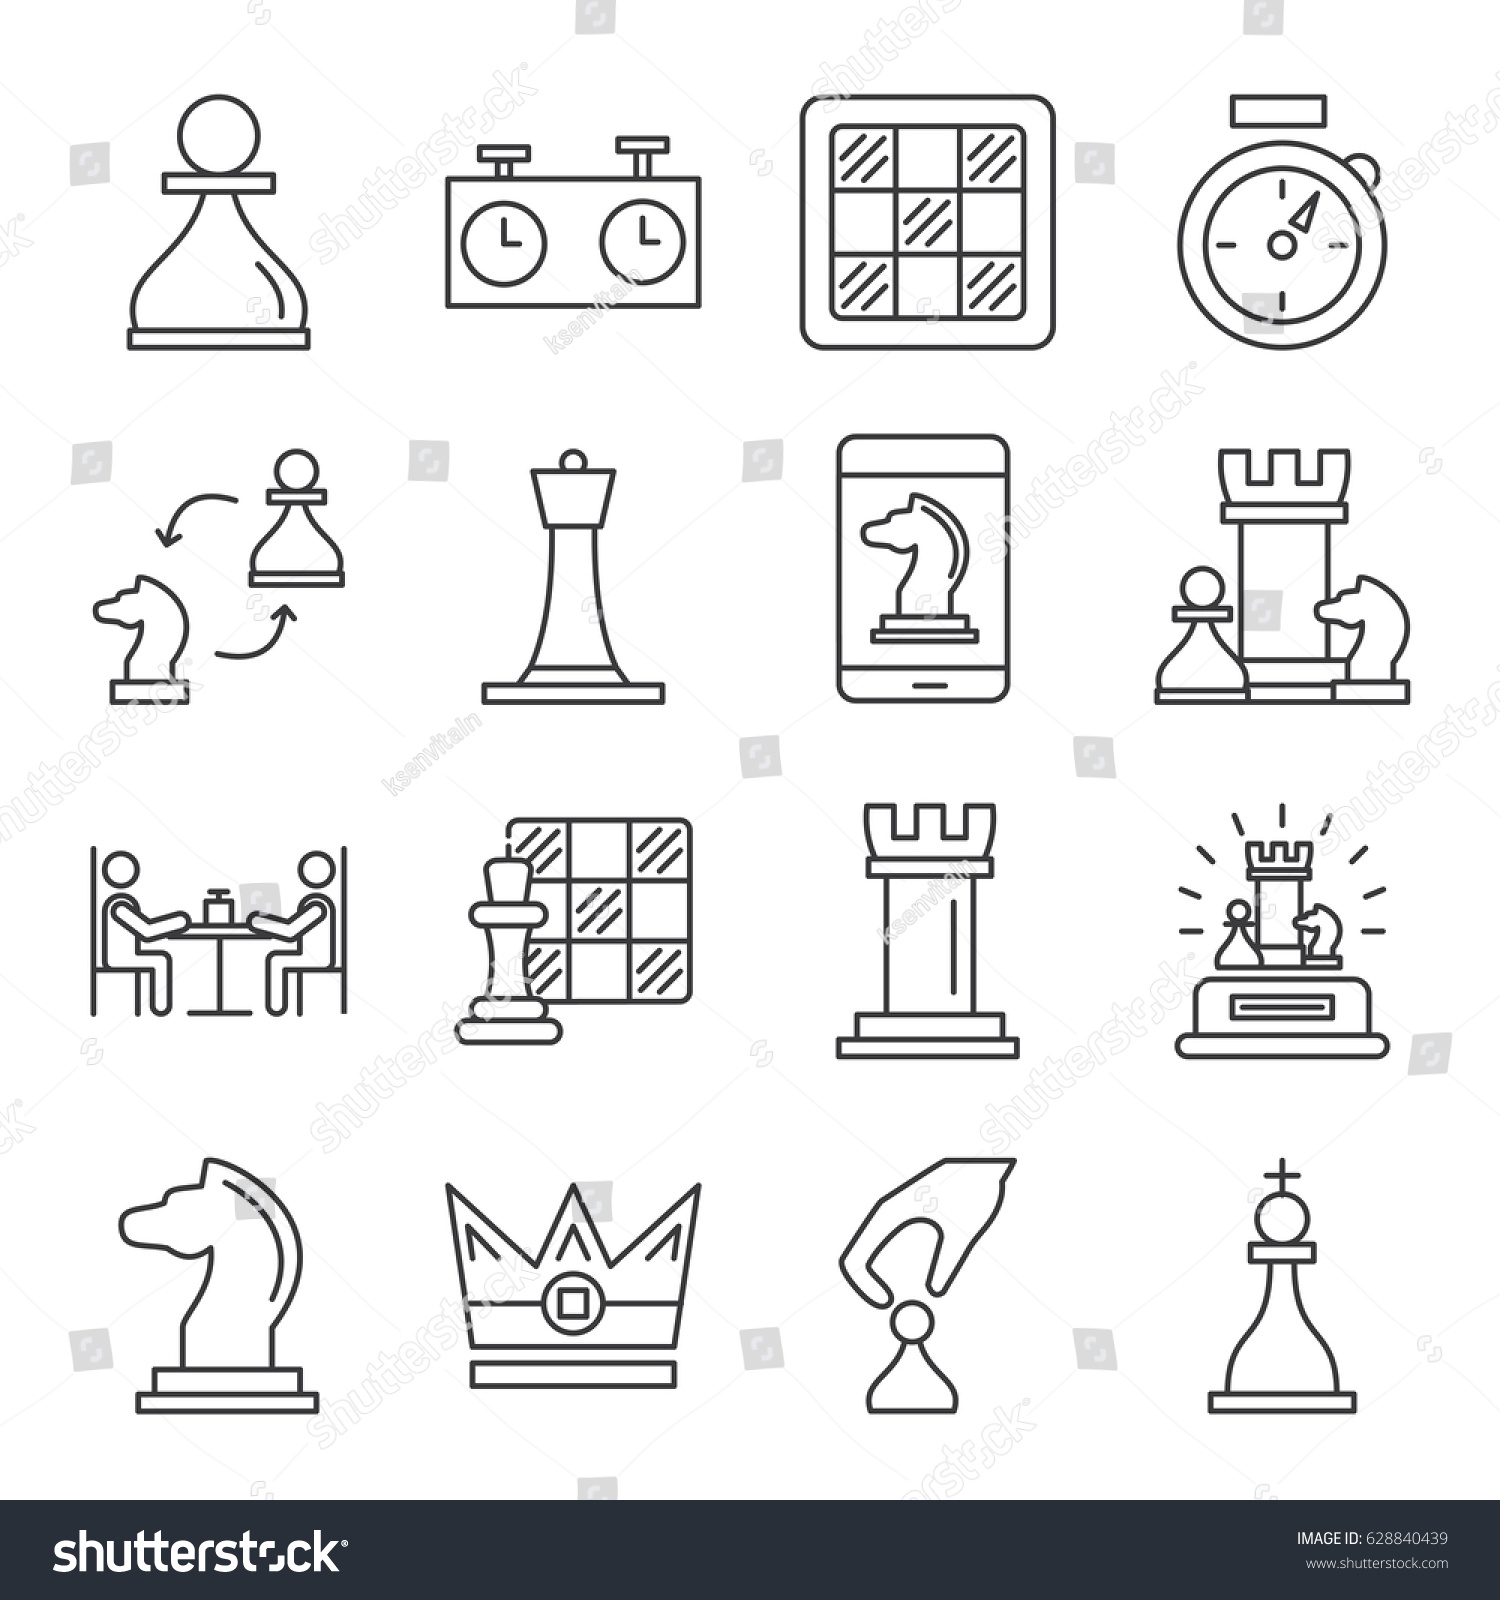 Set Chess Related Vector Line Icons Stock Royalty Free Checkmate Diagram Puzzle From The Of Includes Such As Game Pawn Board